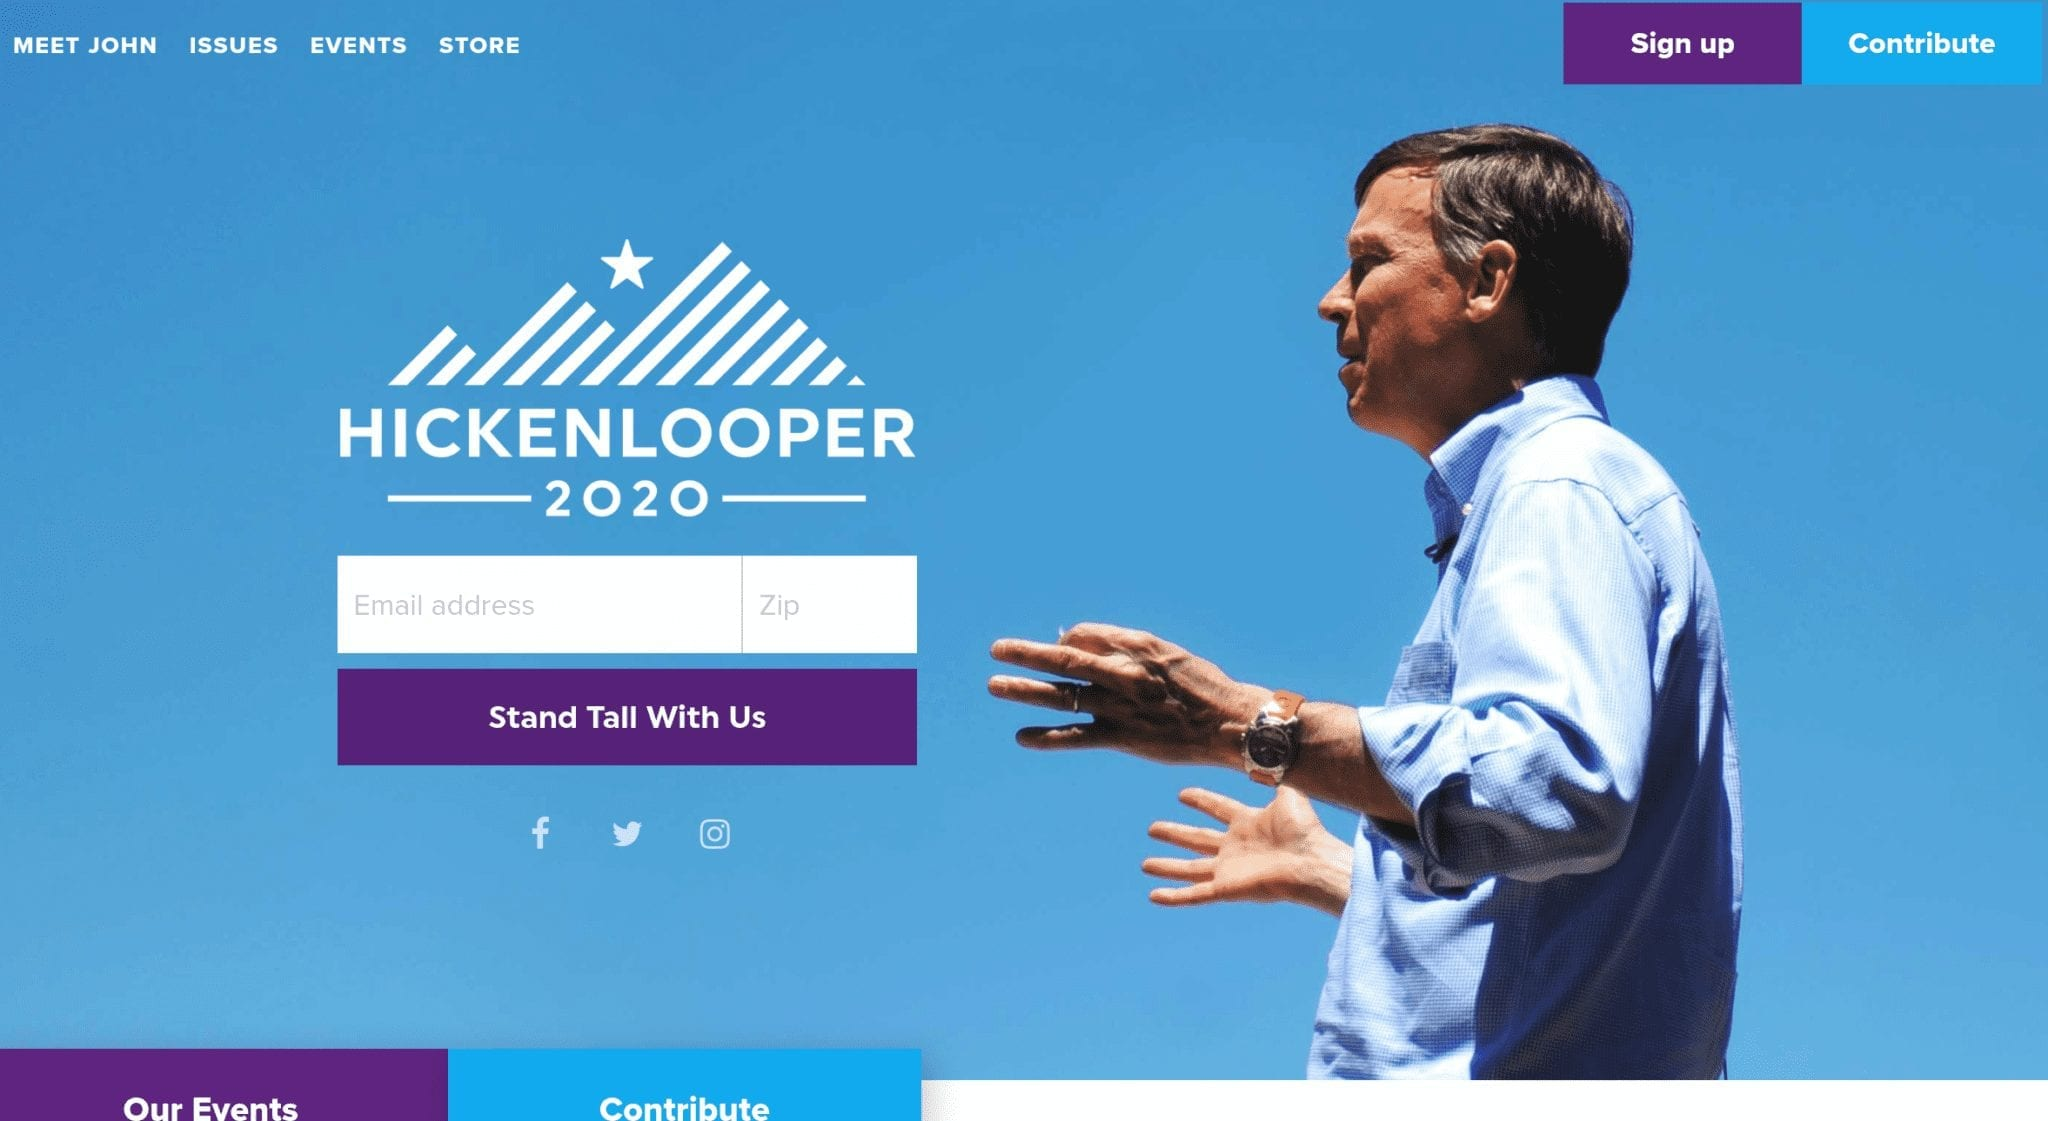 John Hickenlooper 2020 campaign website